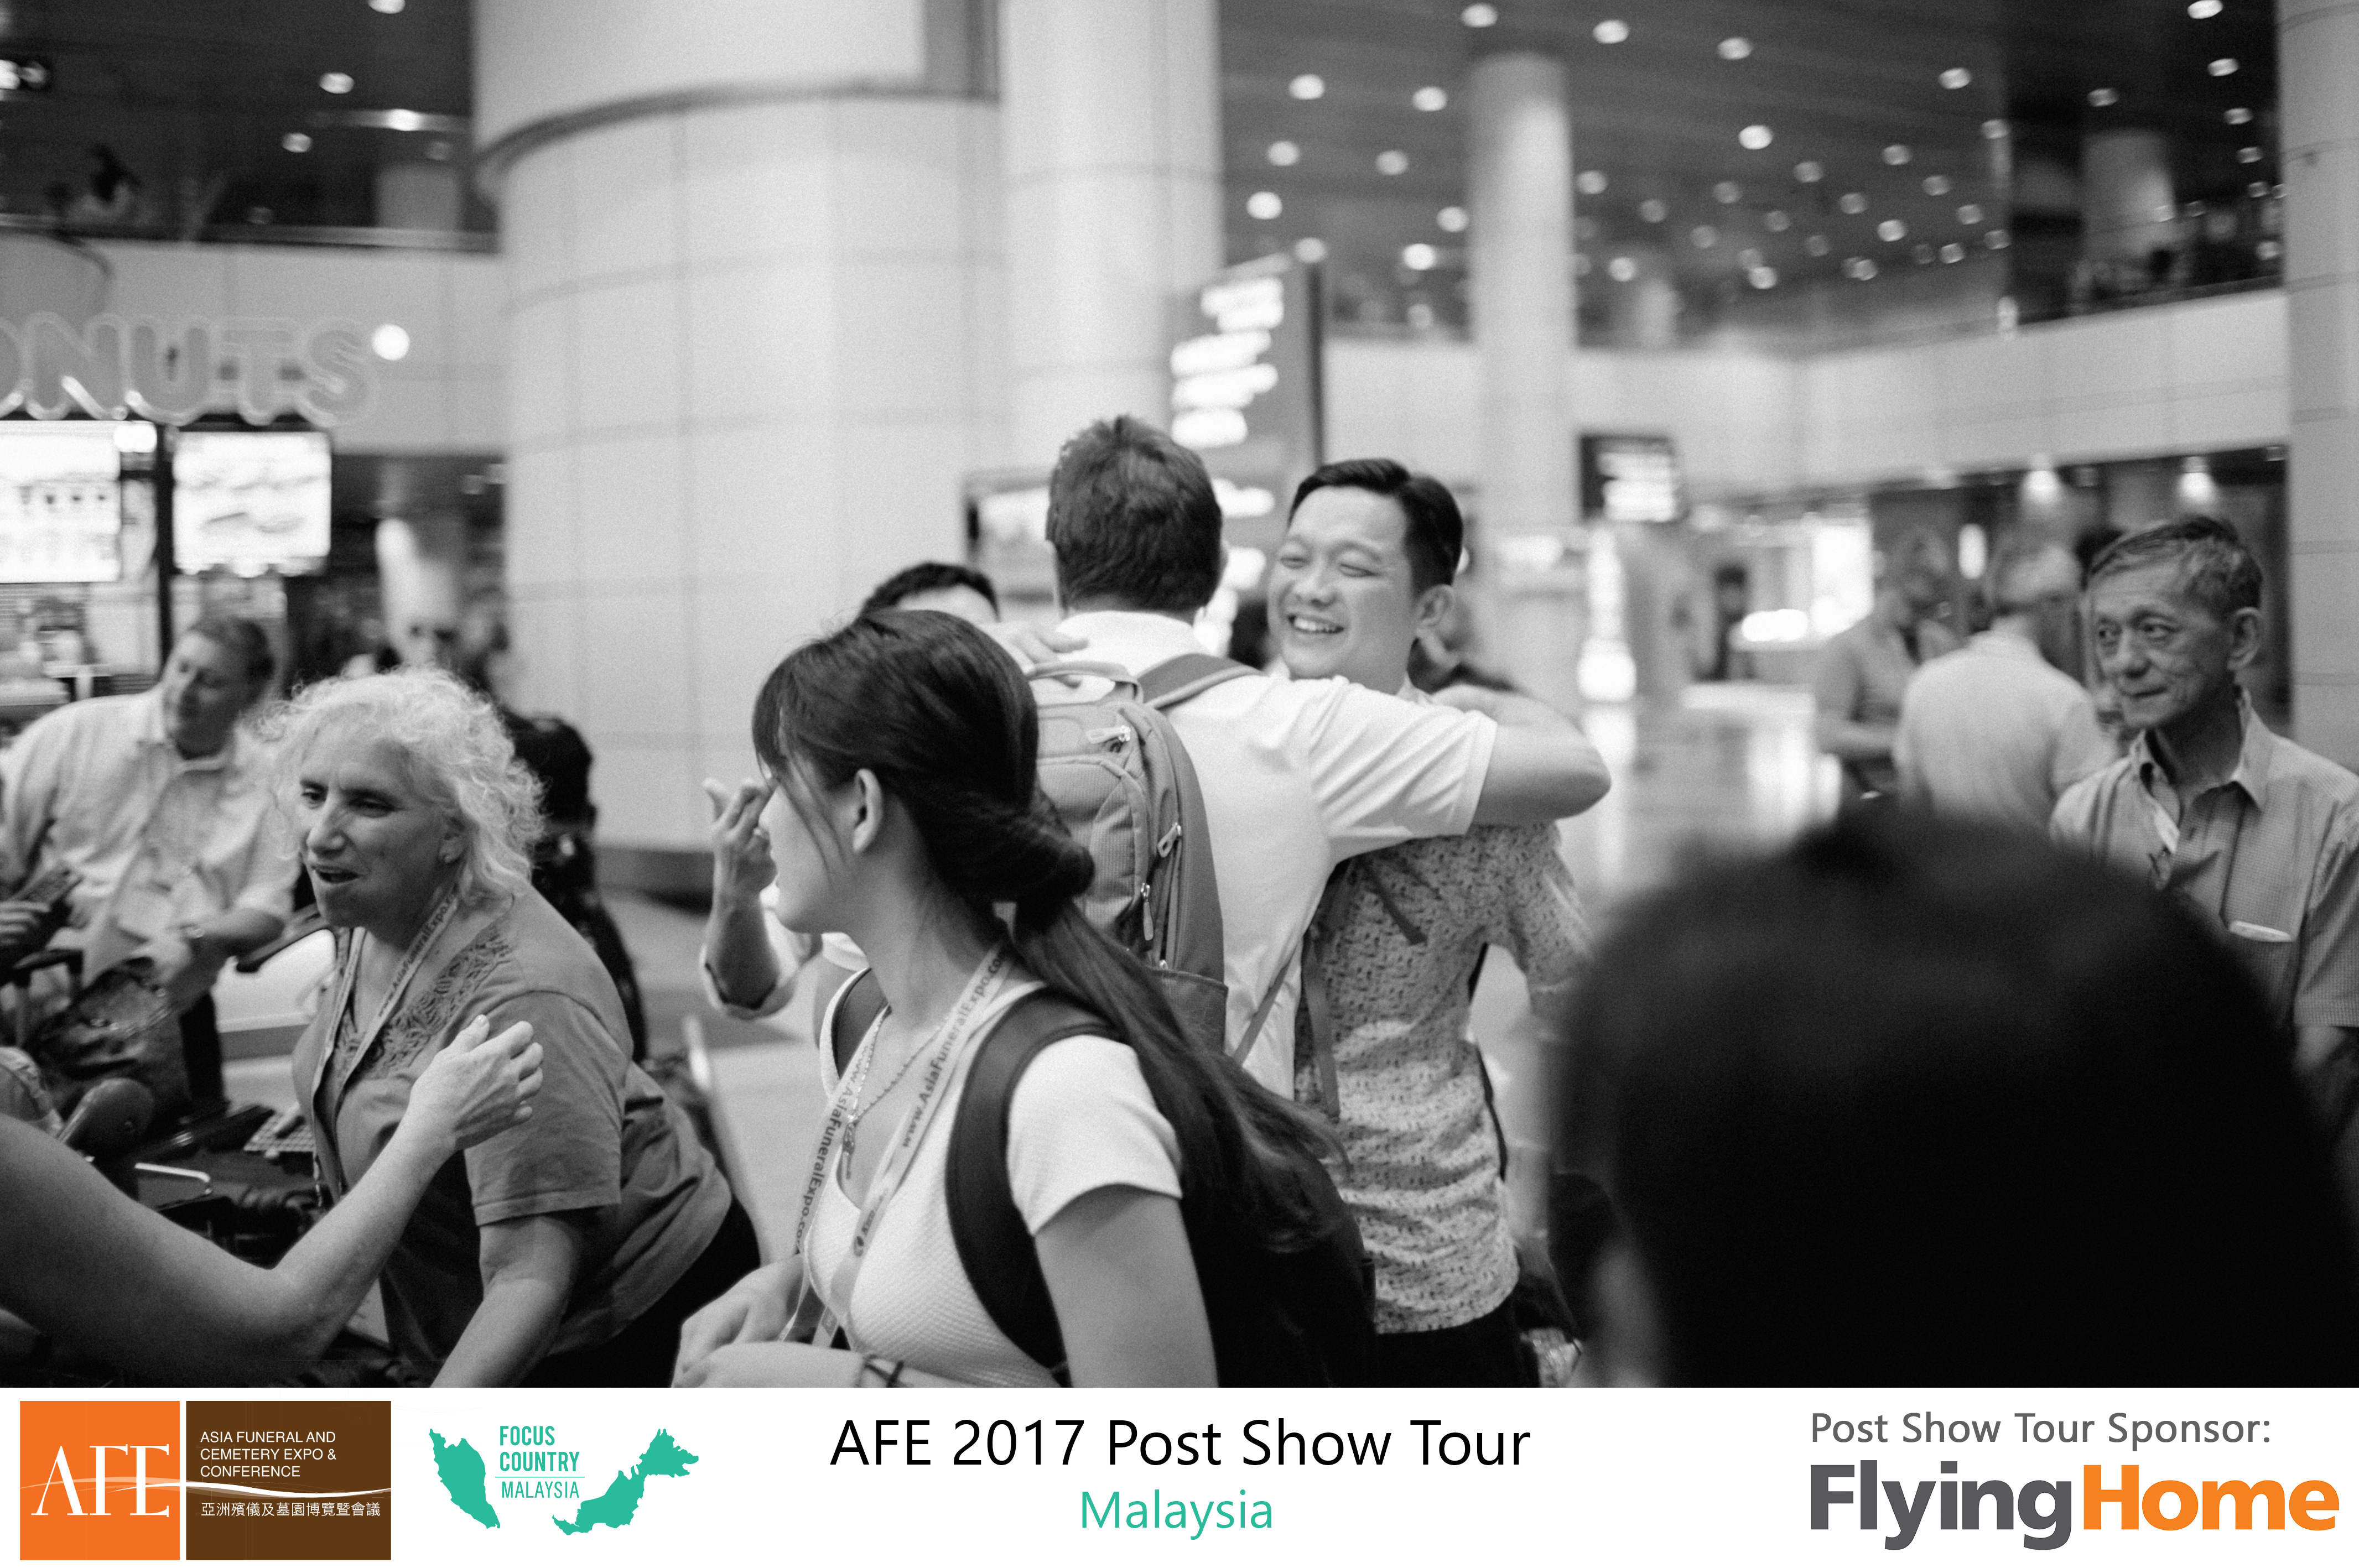 AFE Post Show Tour 2017 Day 1 - 01